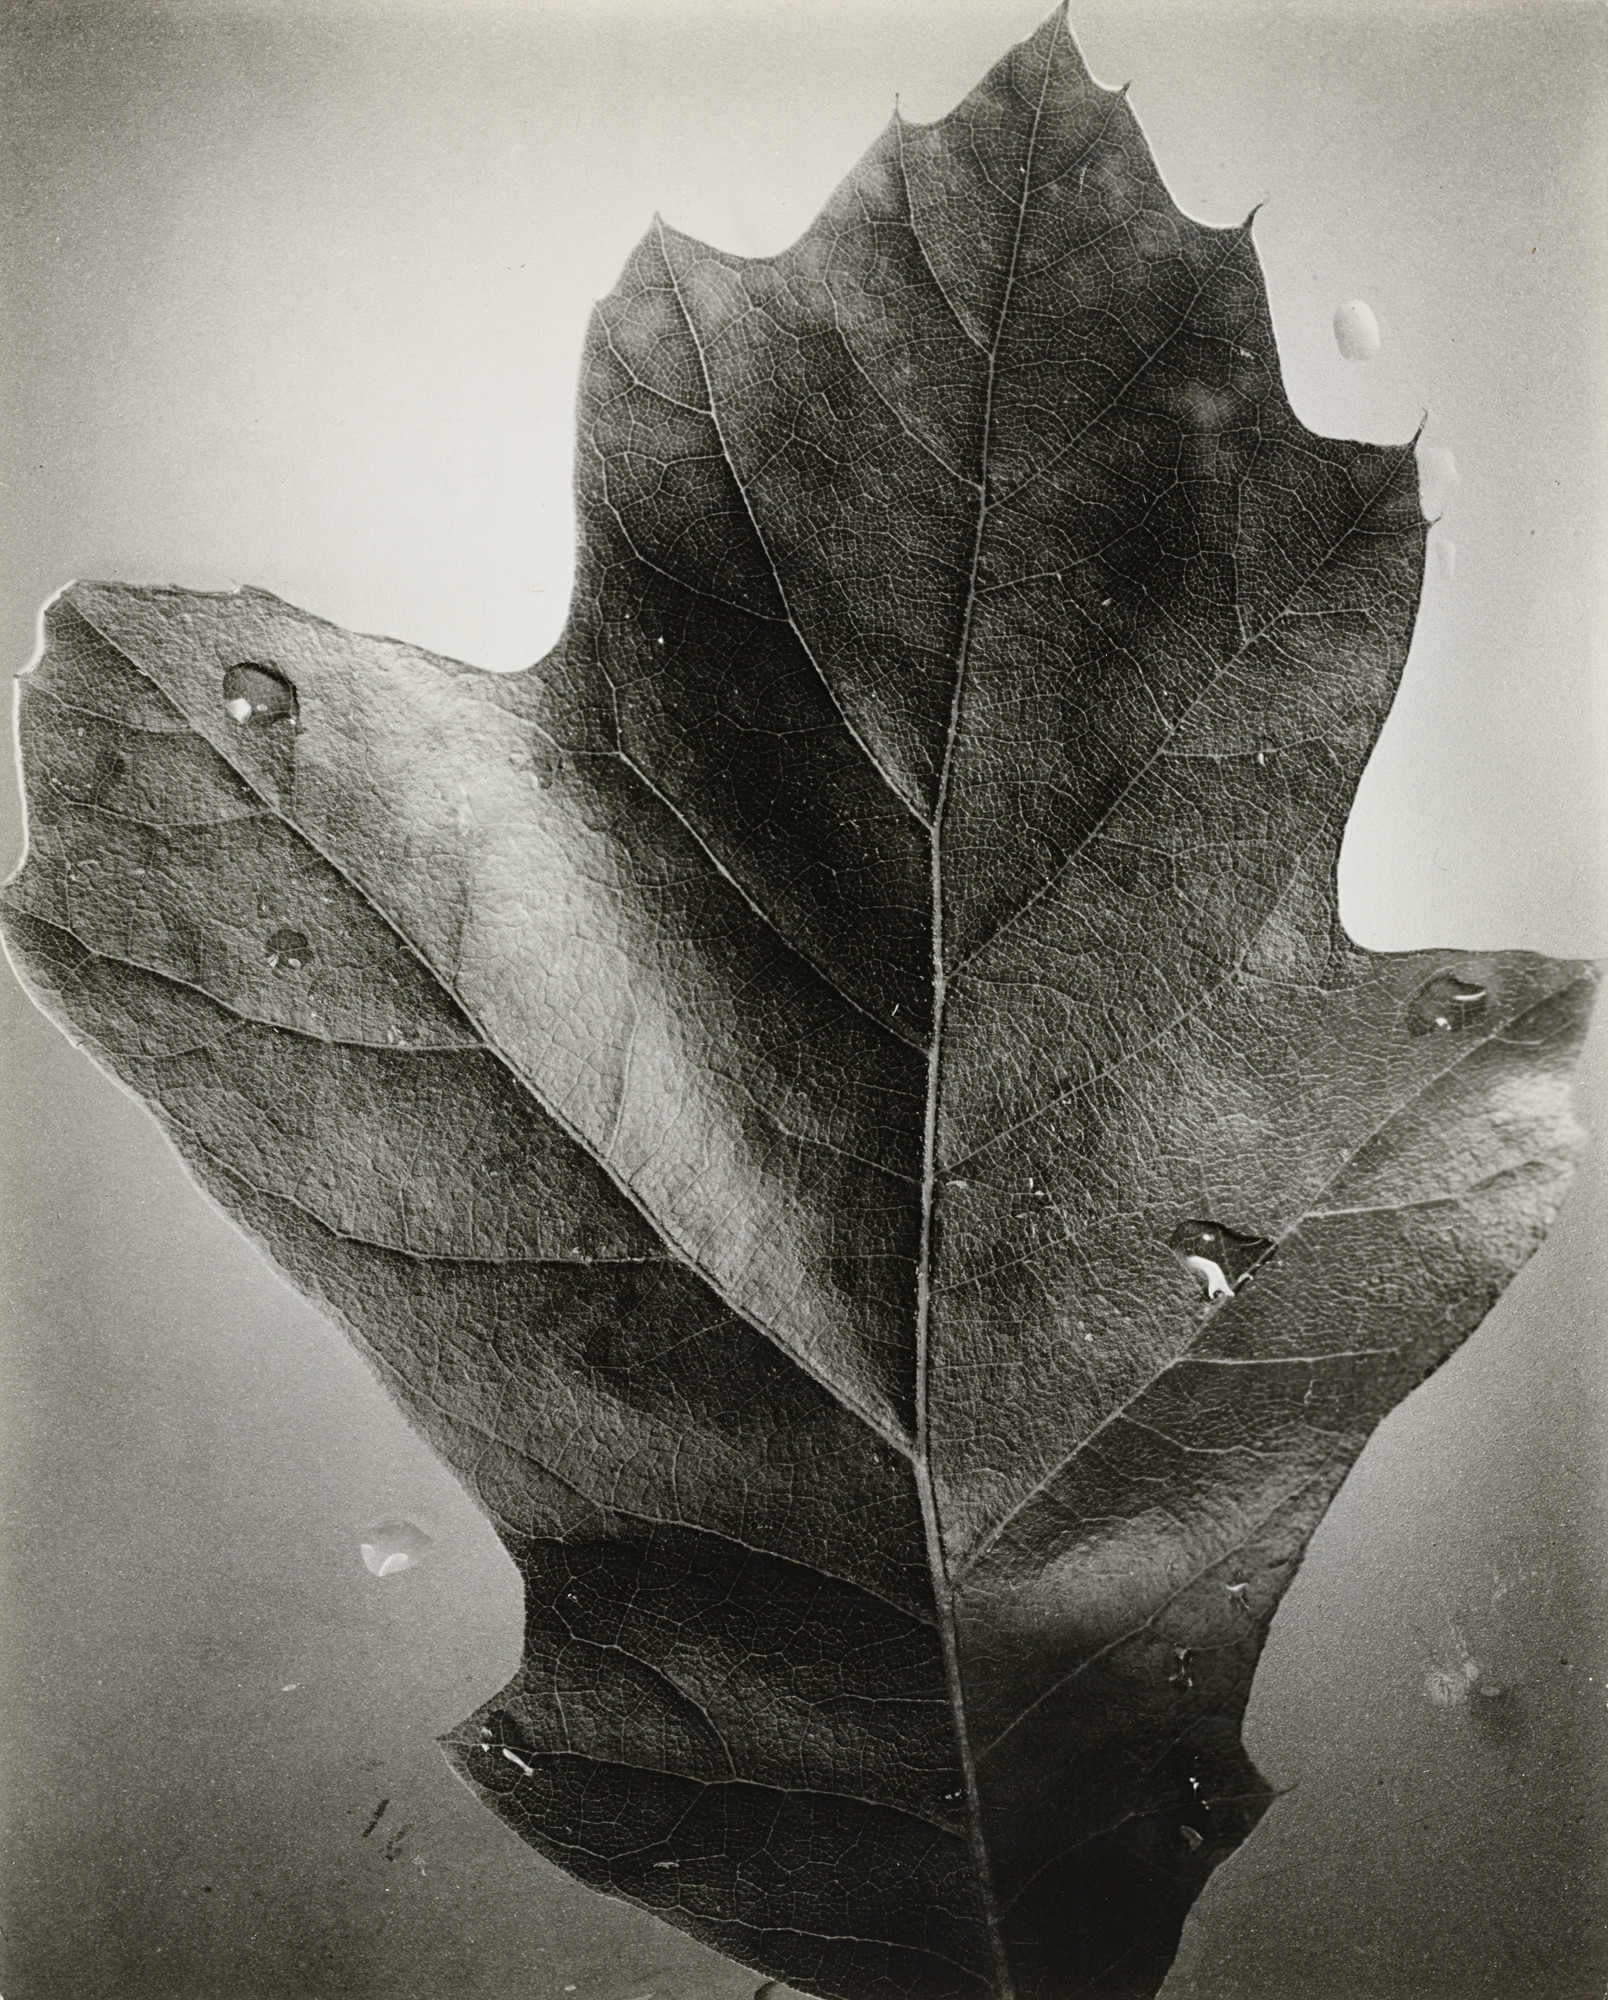 Berenice Abbott. Leaf, Supersight. 1940s